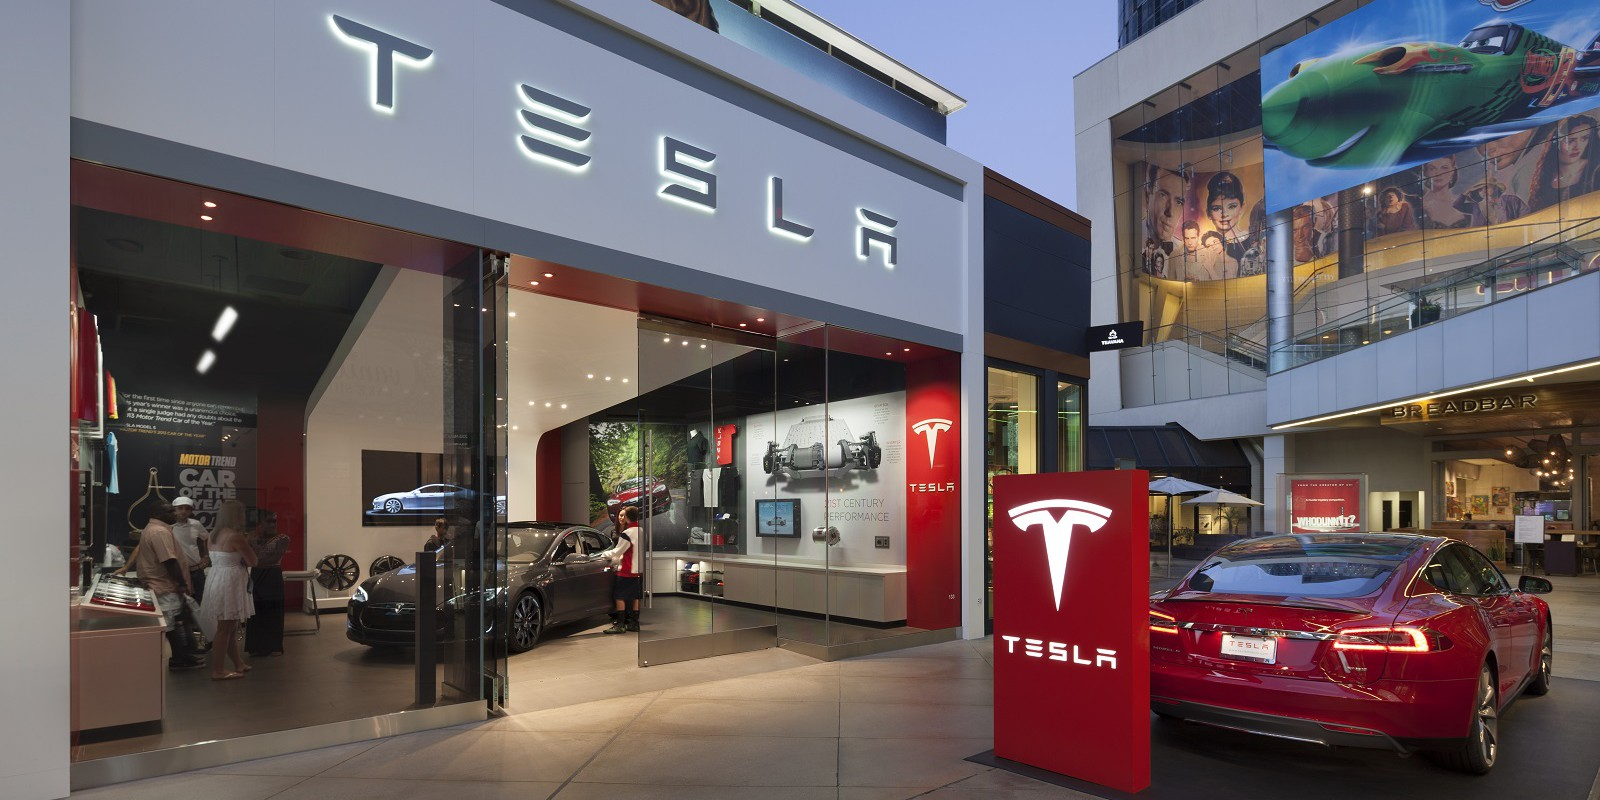 Tesla employees are not getting their bonuses despite record quarter [Update: now told they will get paid]